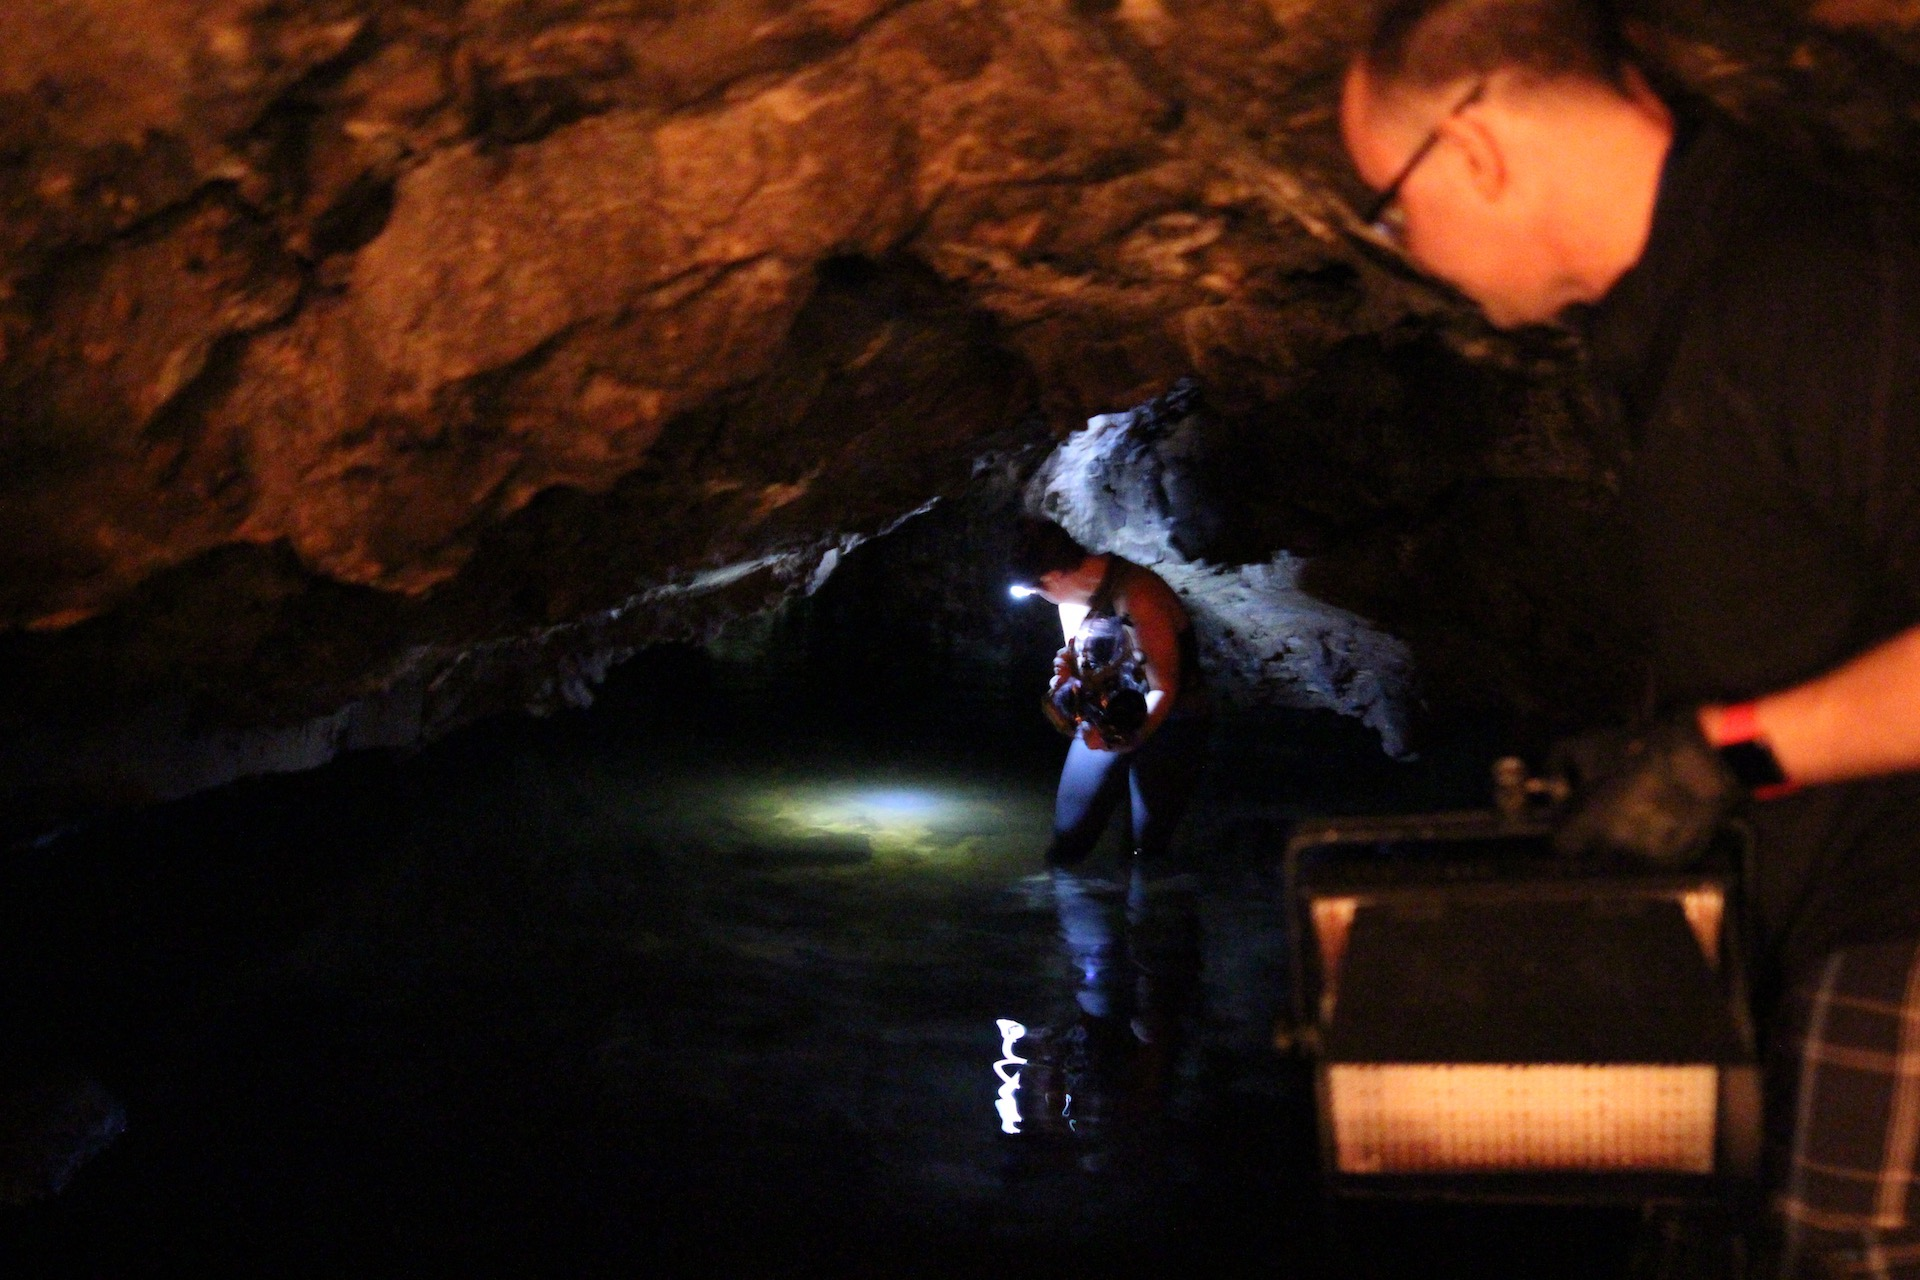 Morgana shooting in Lusk Caves, Gatineau Park. Photo credit: Patrick Murray.